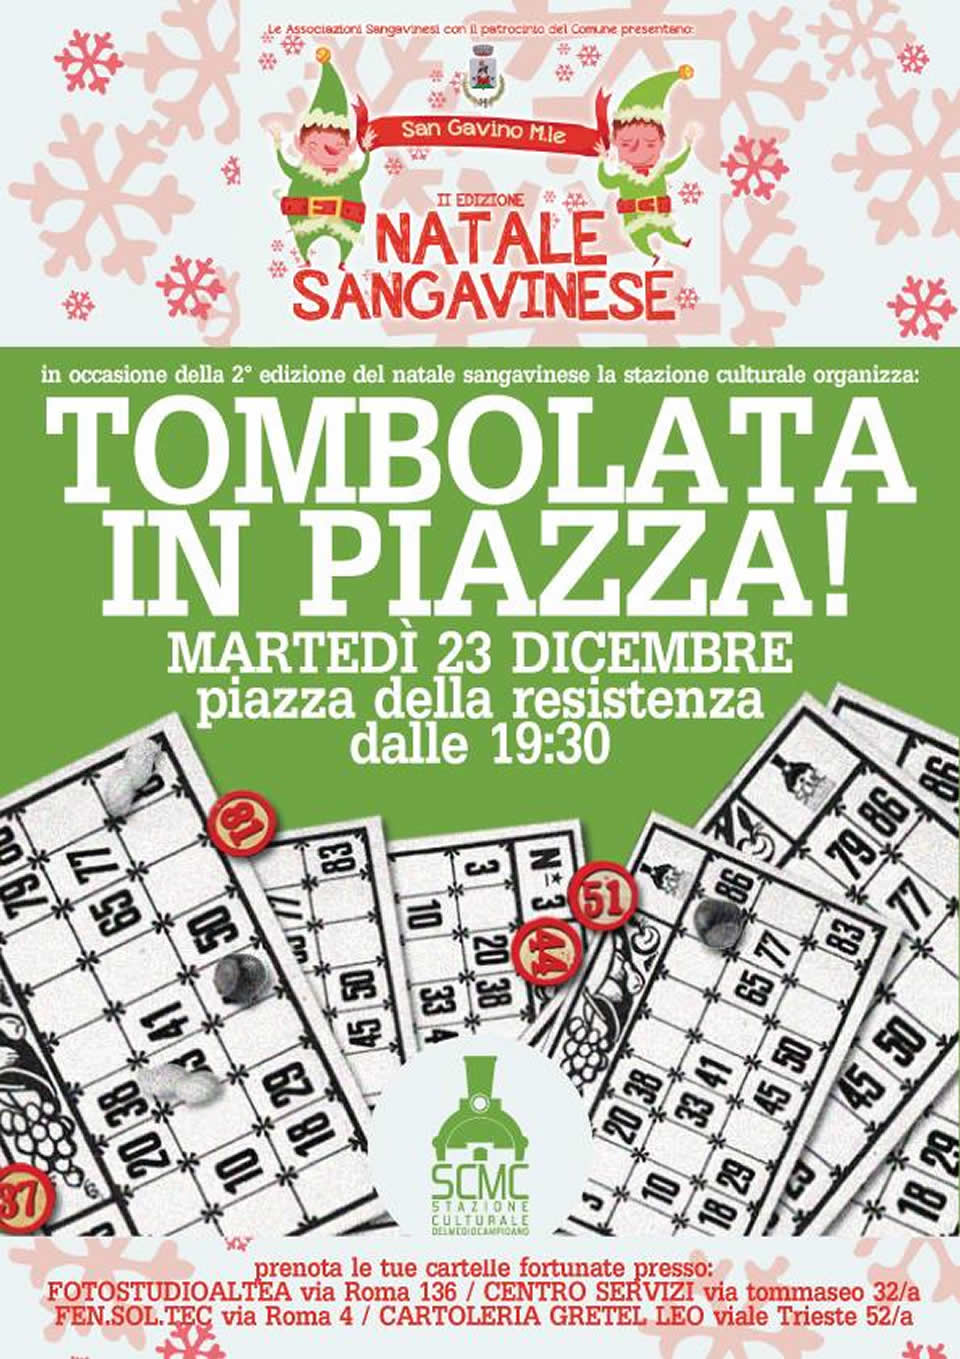 Tombolata in piazza